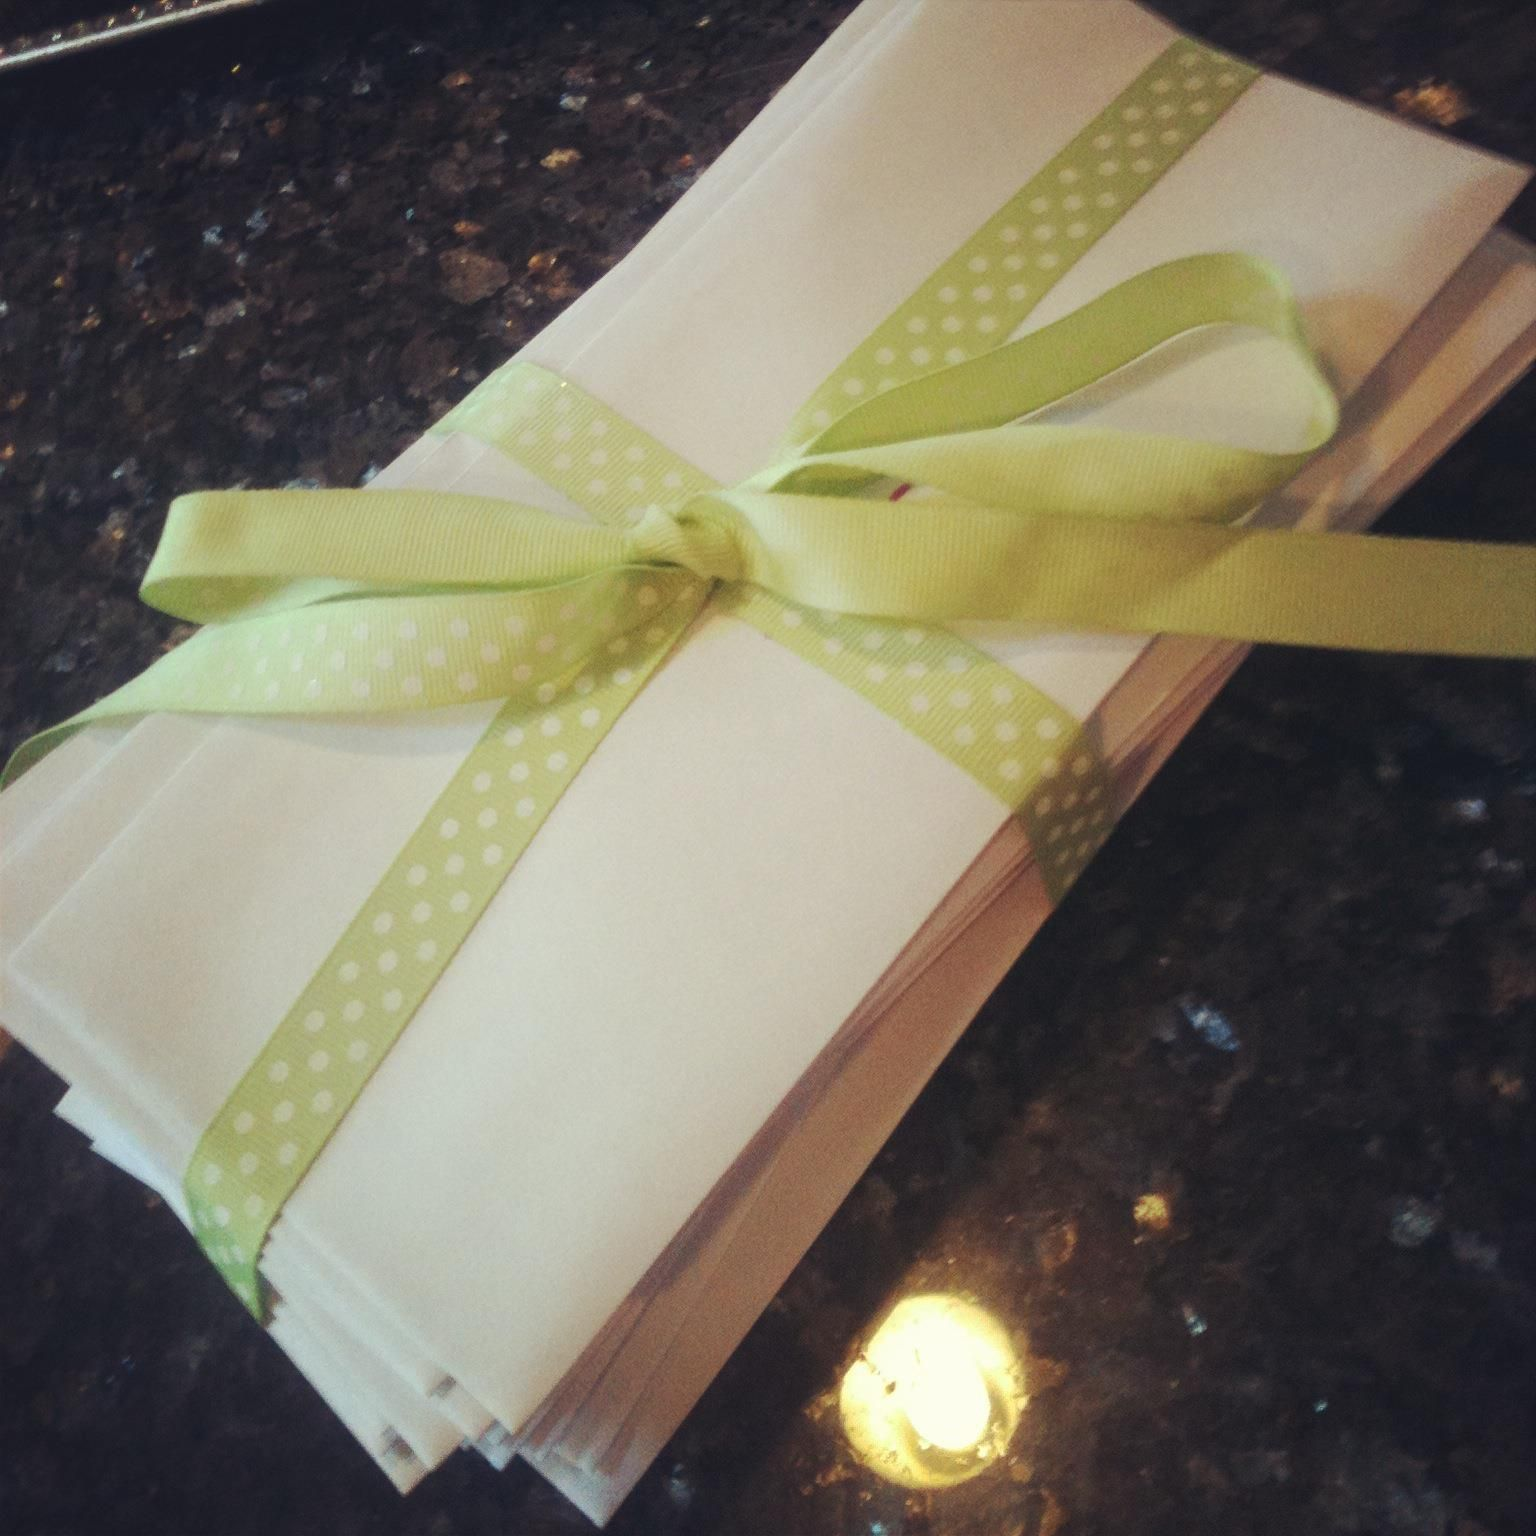 30 memoriesletter for 30 years of life I had my boyfriends friends